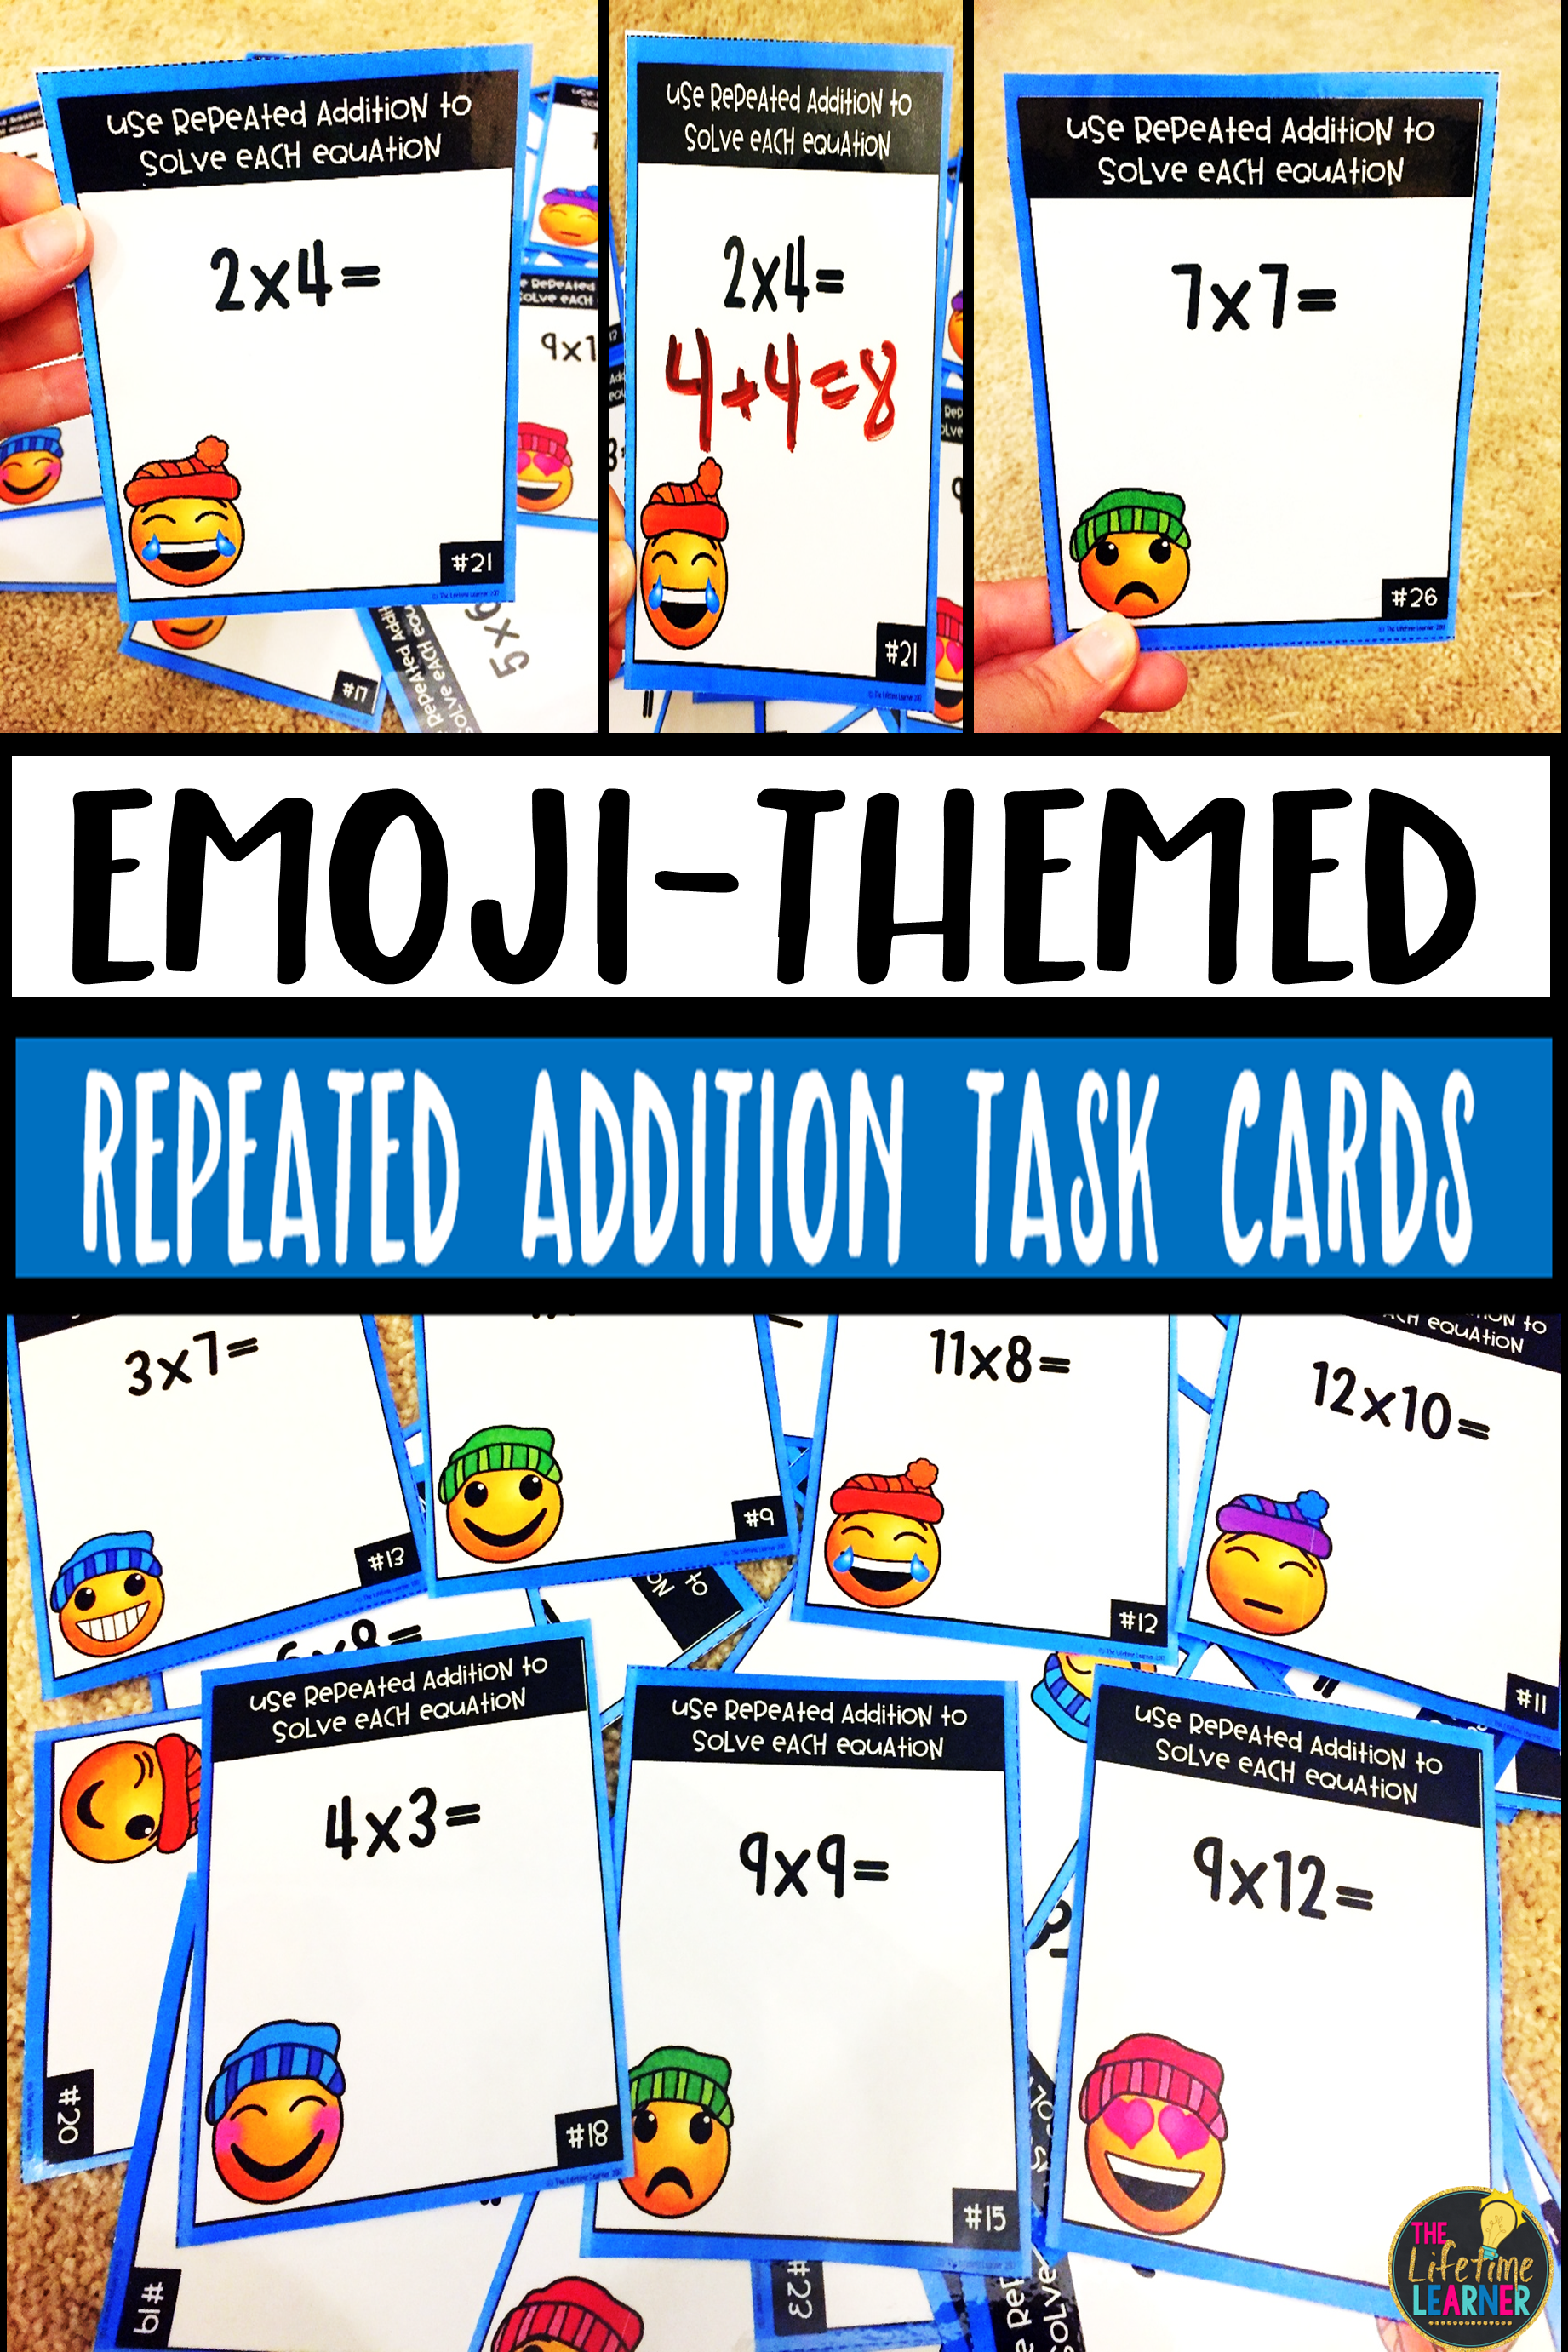 These Are 28 Multiplication Task Cards That Focus On The